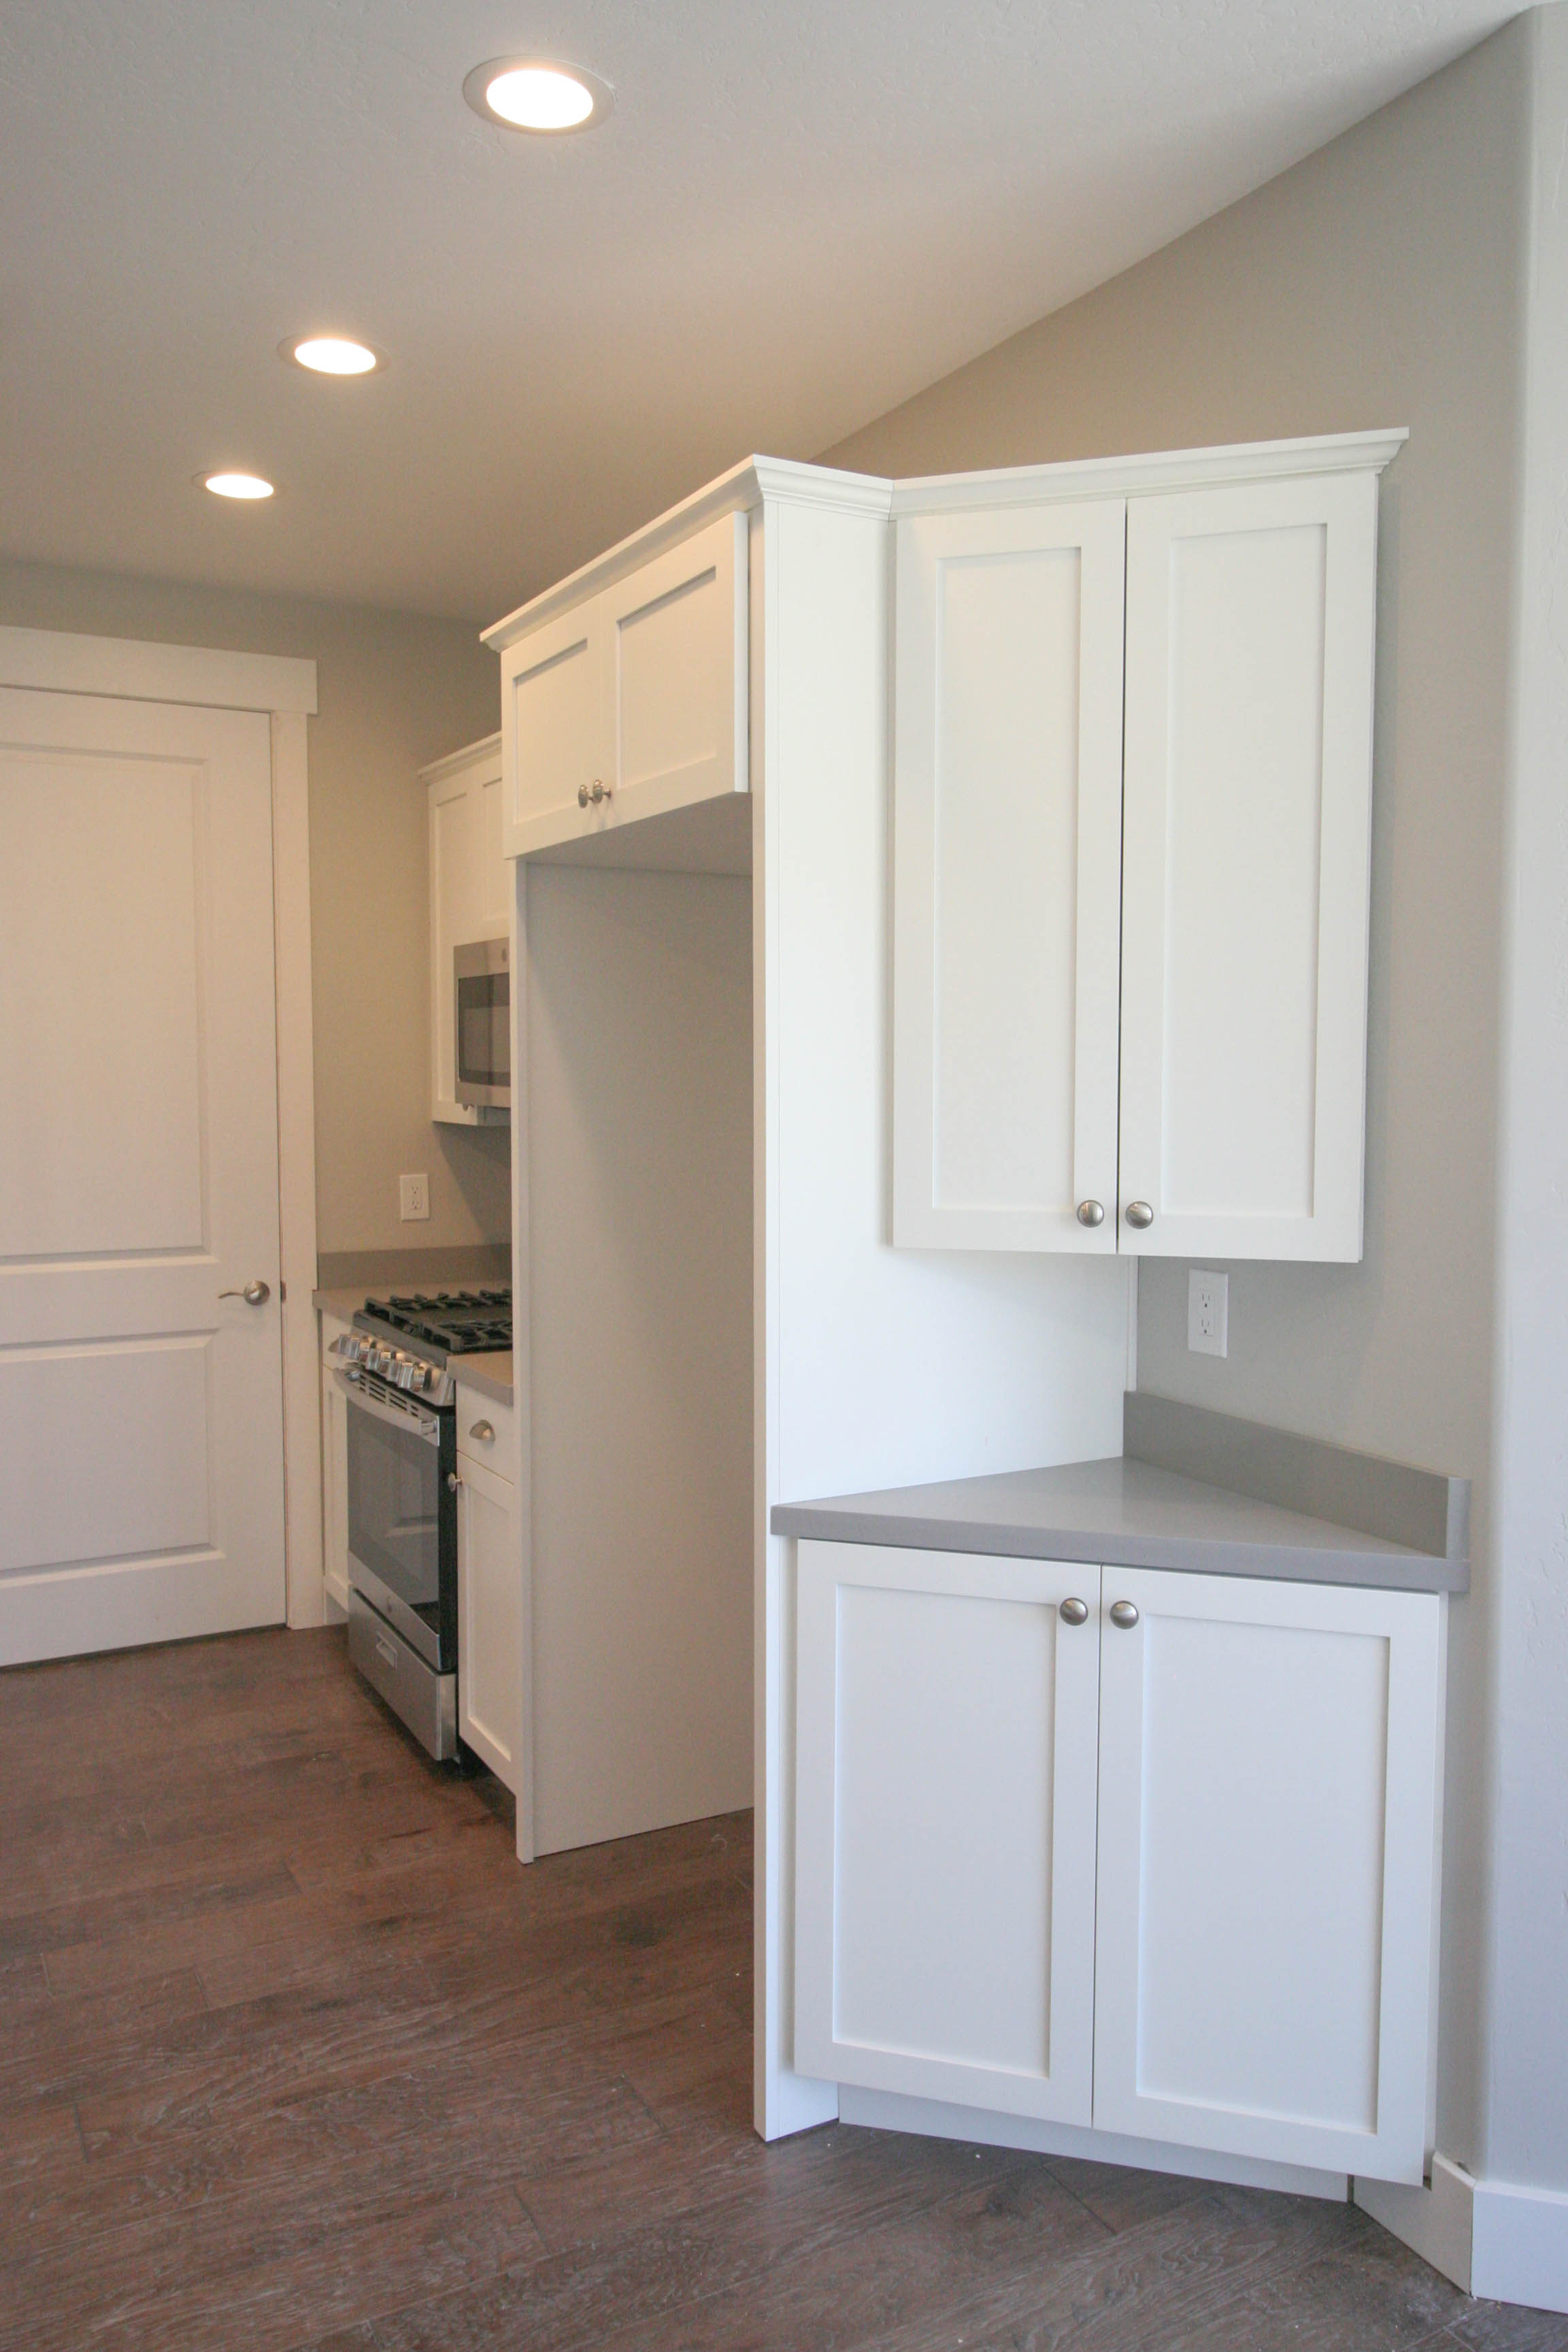 671Brookline kitchen2.jpg